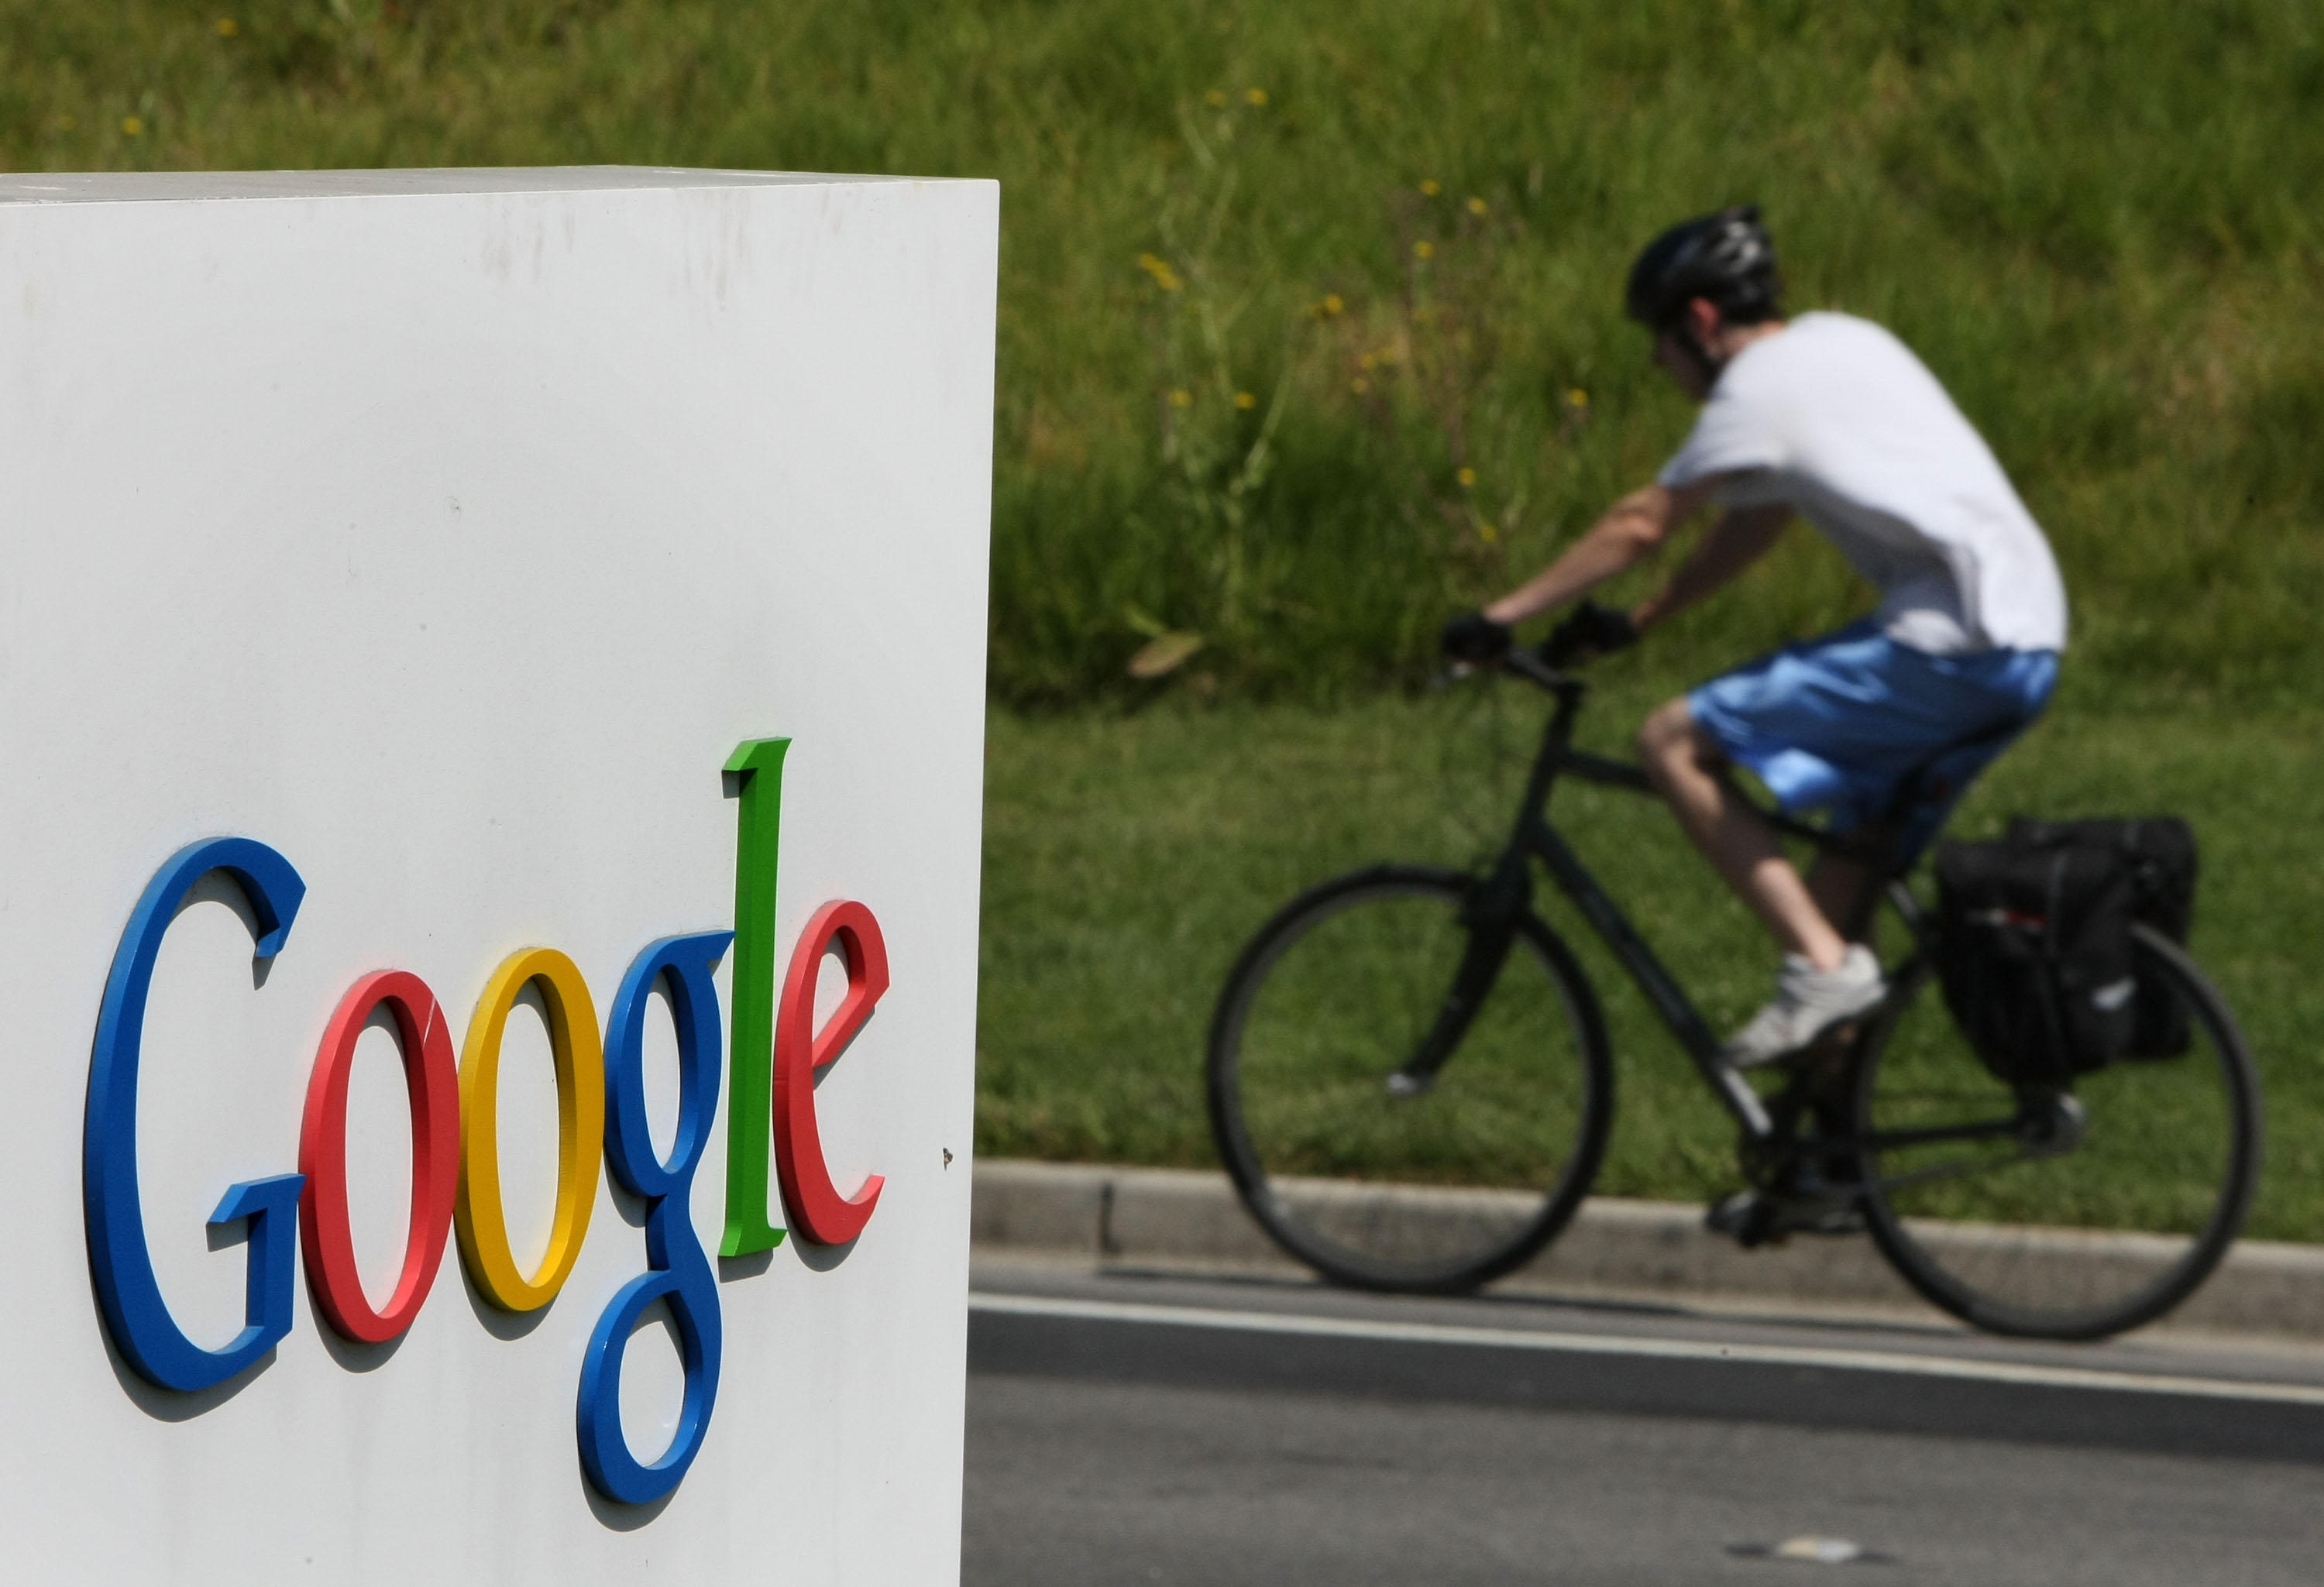 Cyclist rides past Google sign